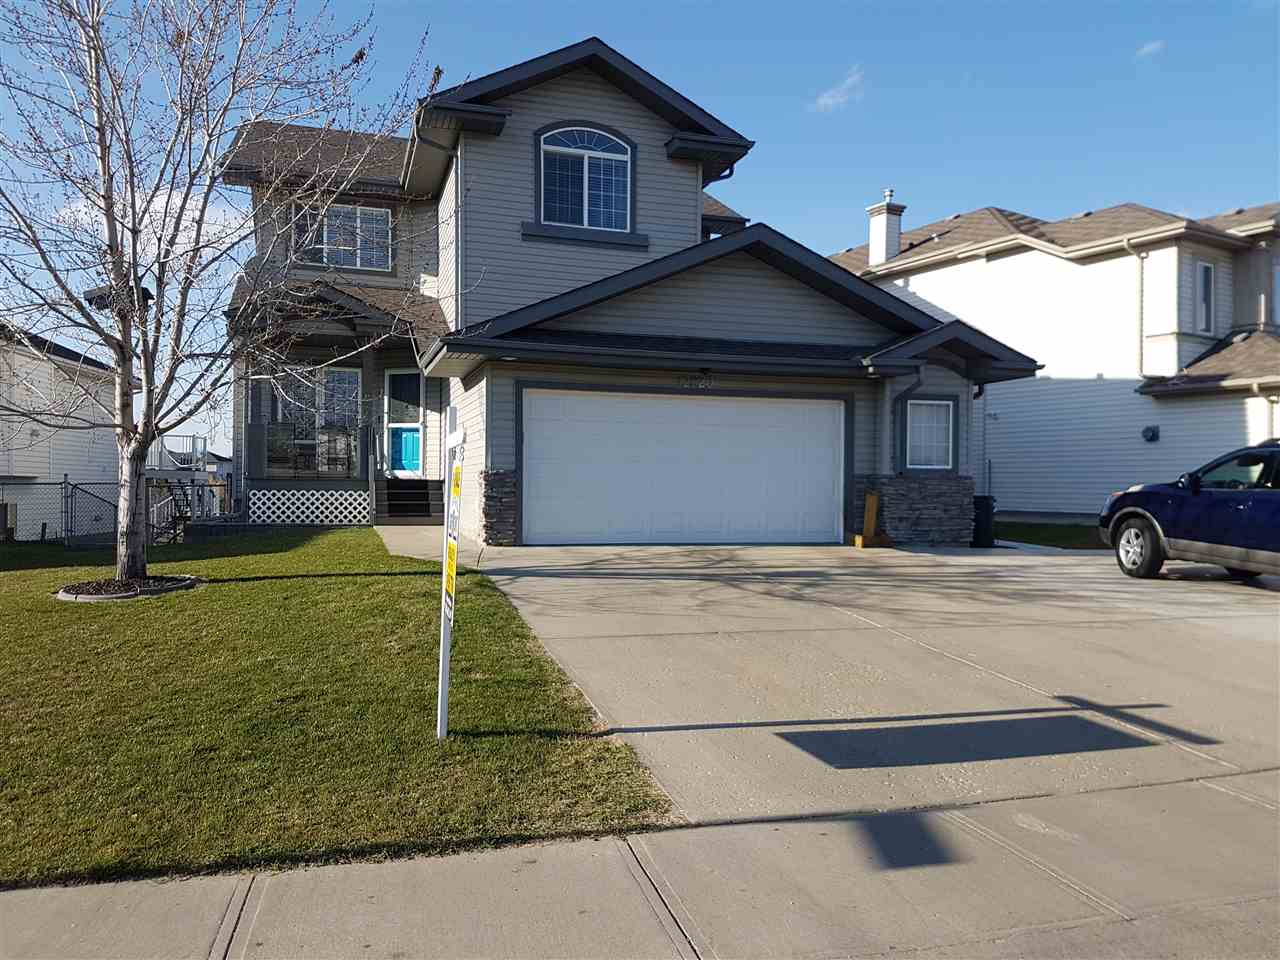 MLS® listing #E4148572 for sale located at 12820 Hudson Way